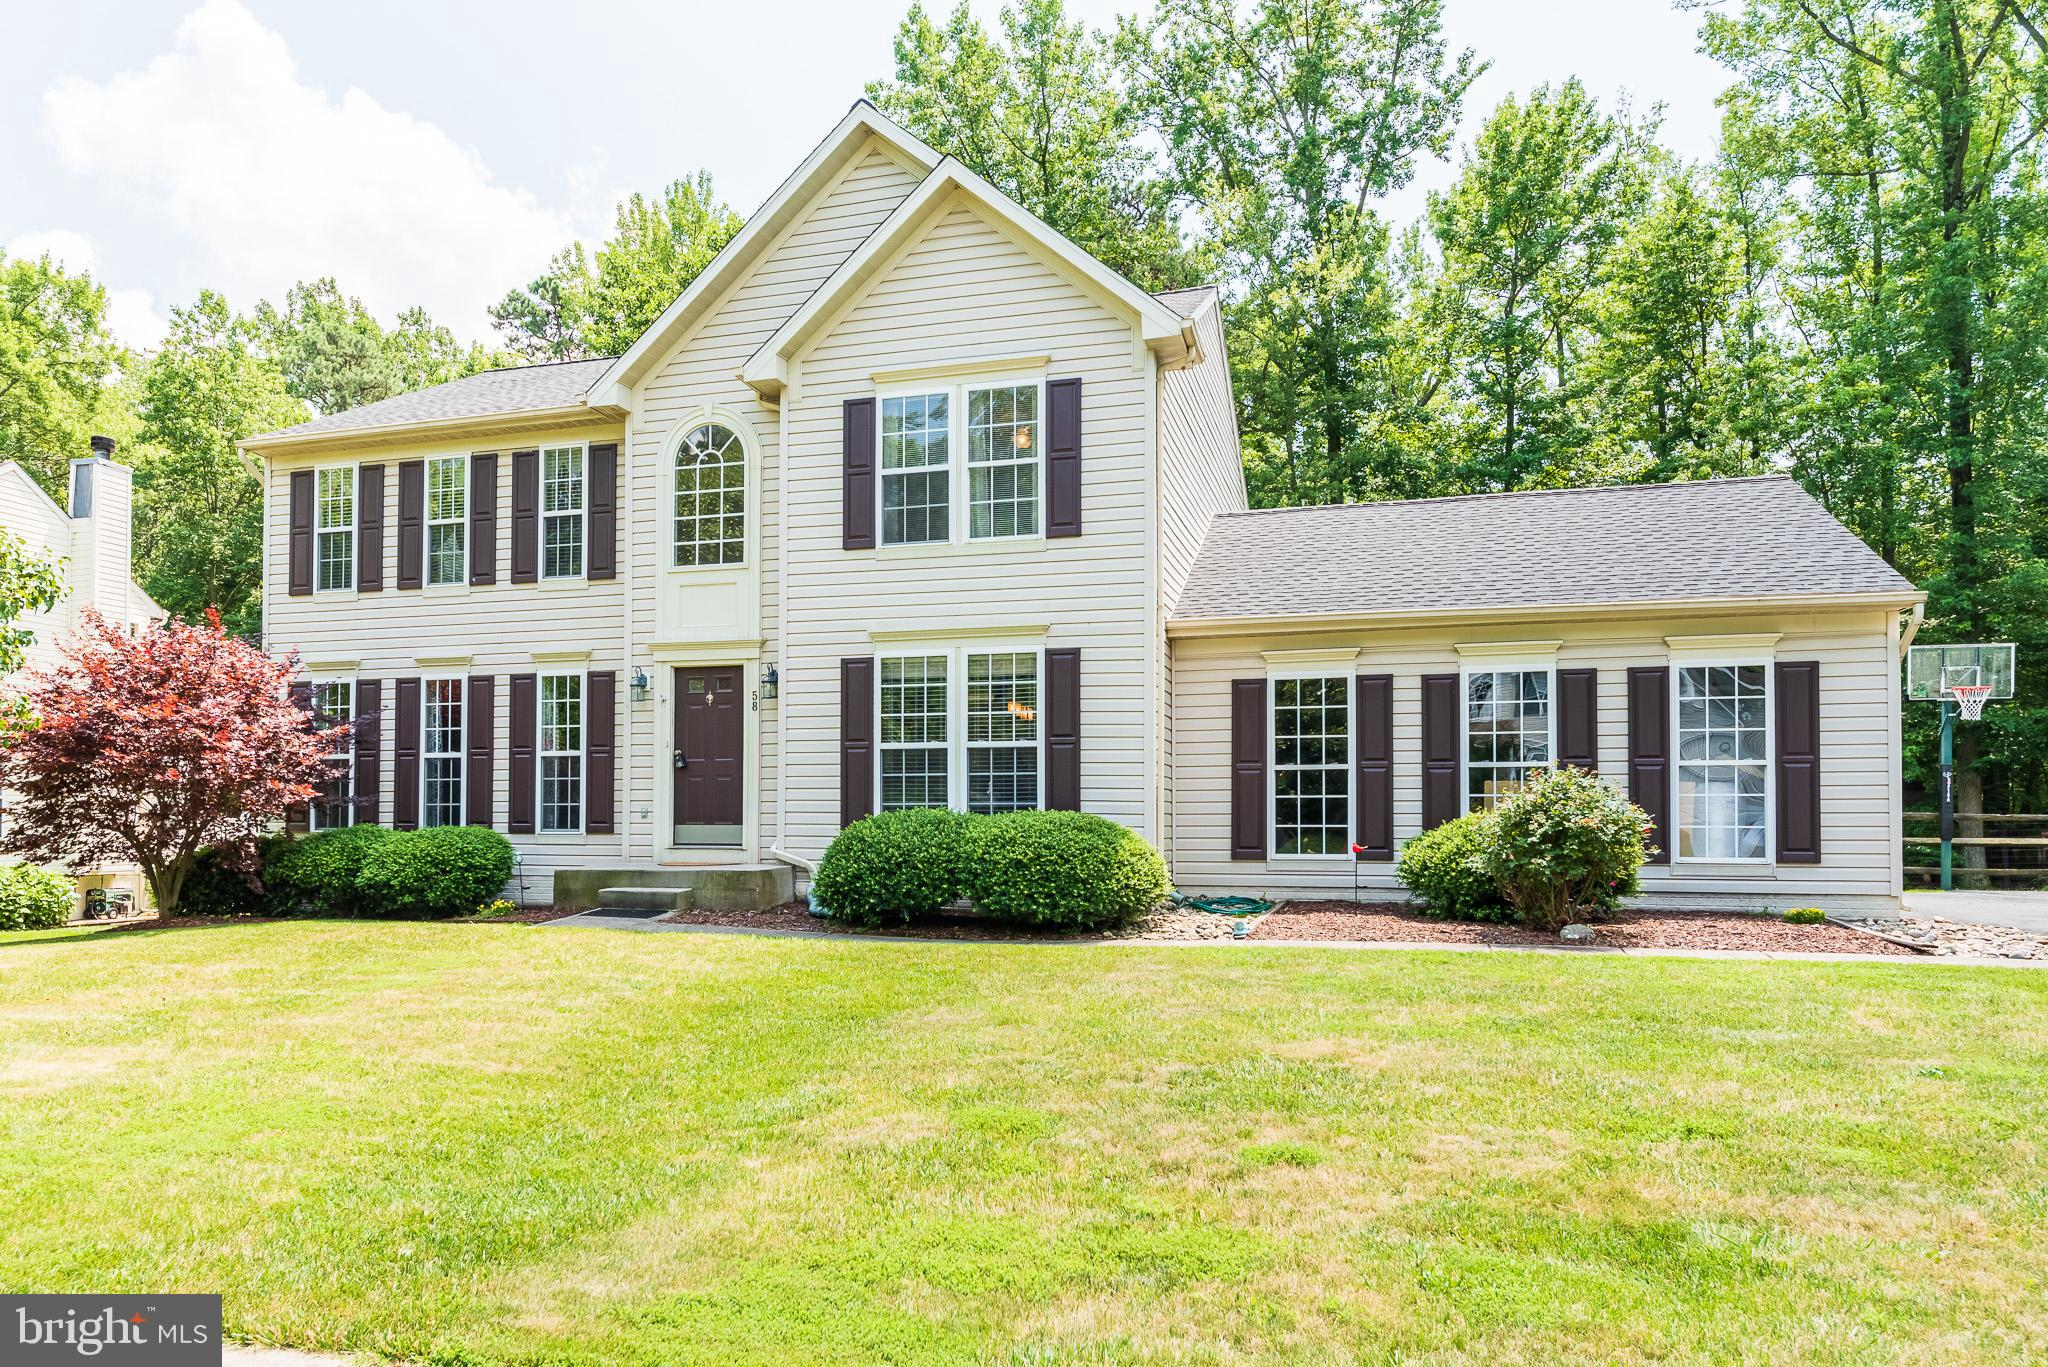 58 Forge Ct, North East, MD, 21901